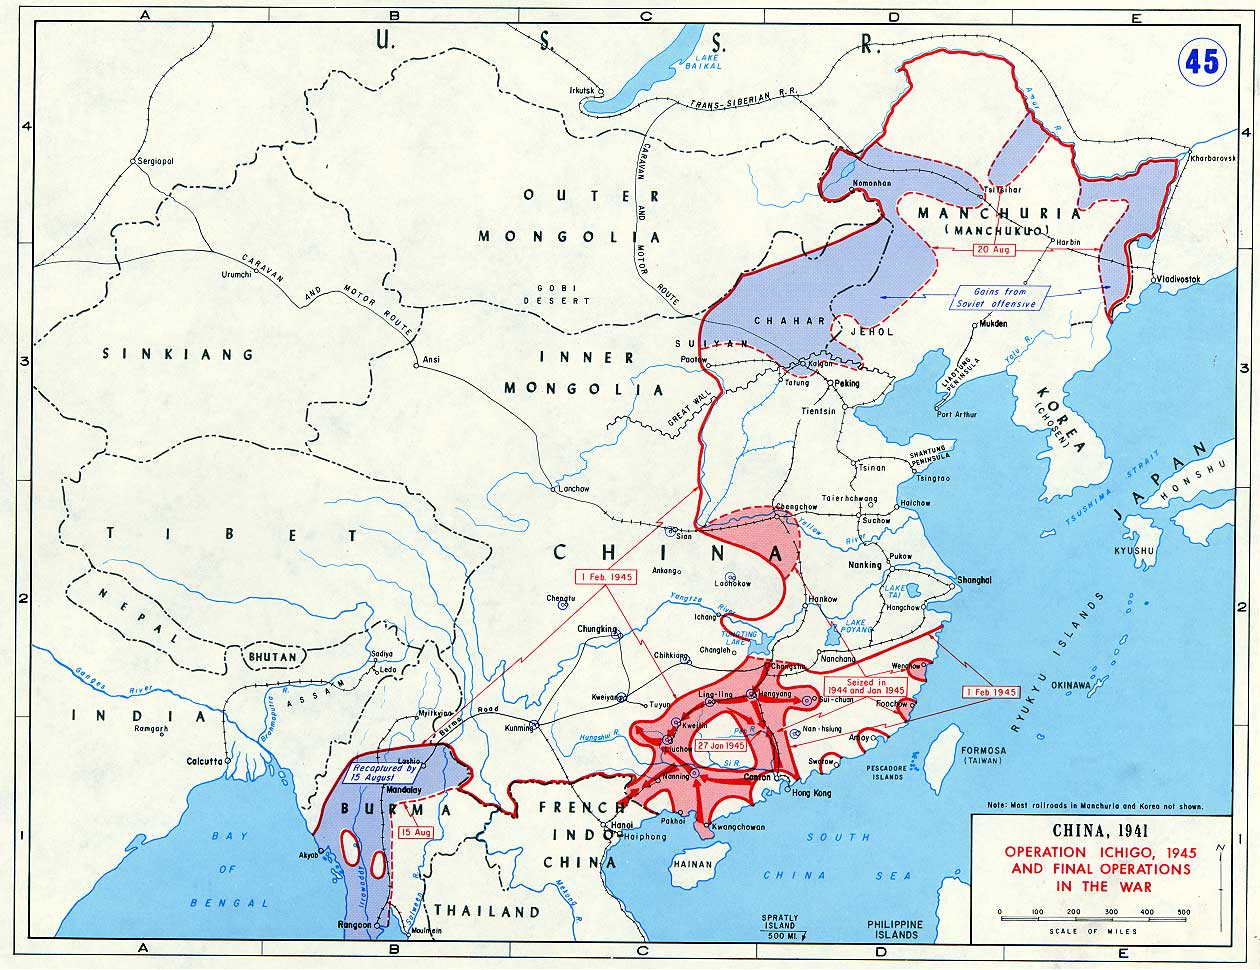 Image Ww2 asia map 45jpg Axis Allies Wiki – Full Asia Map